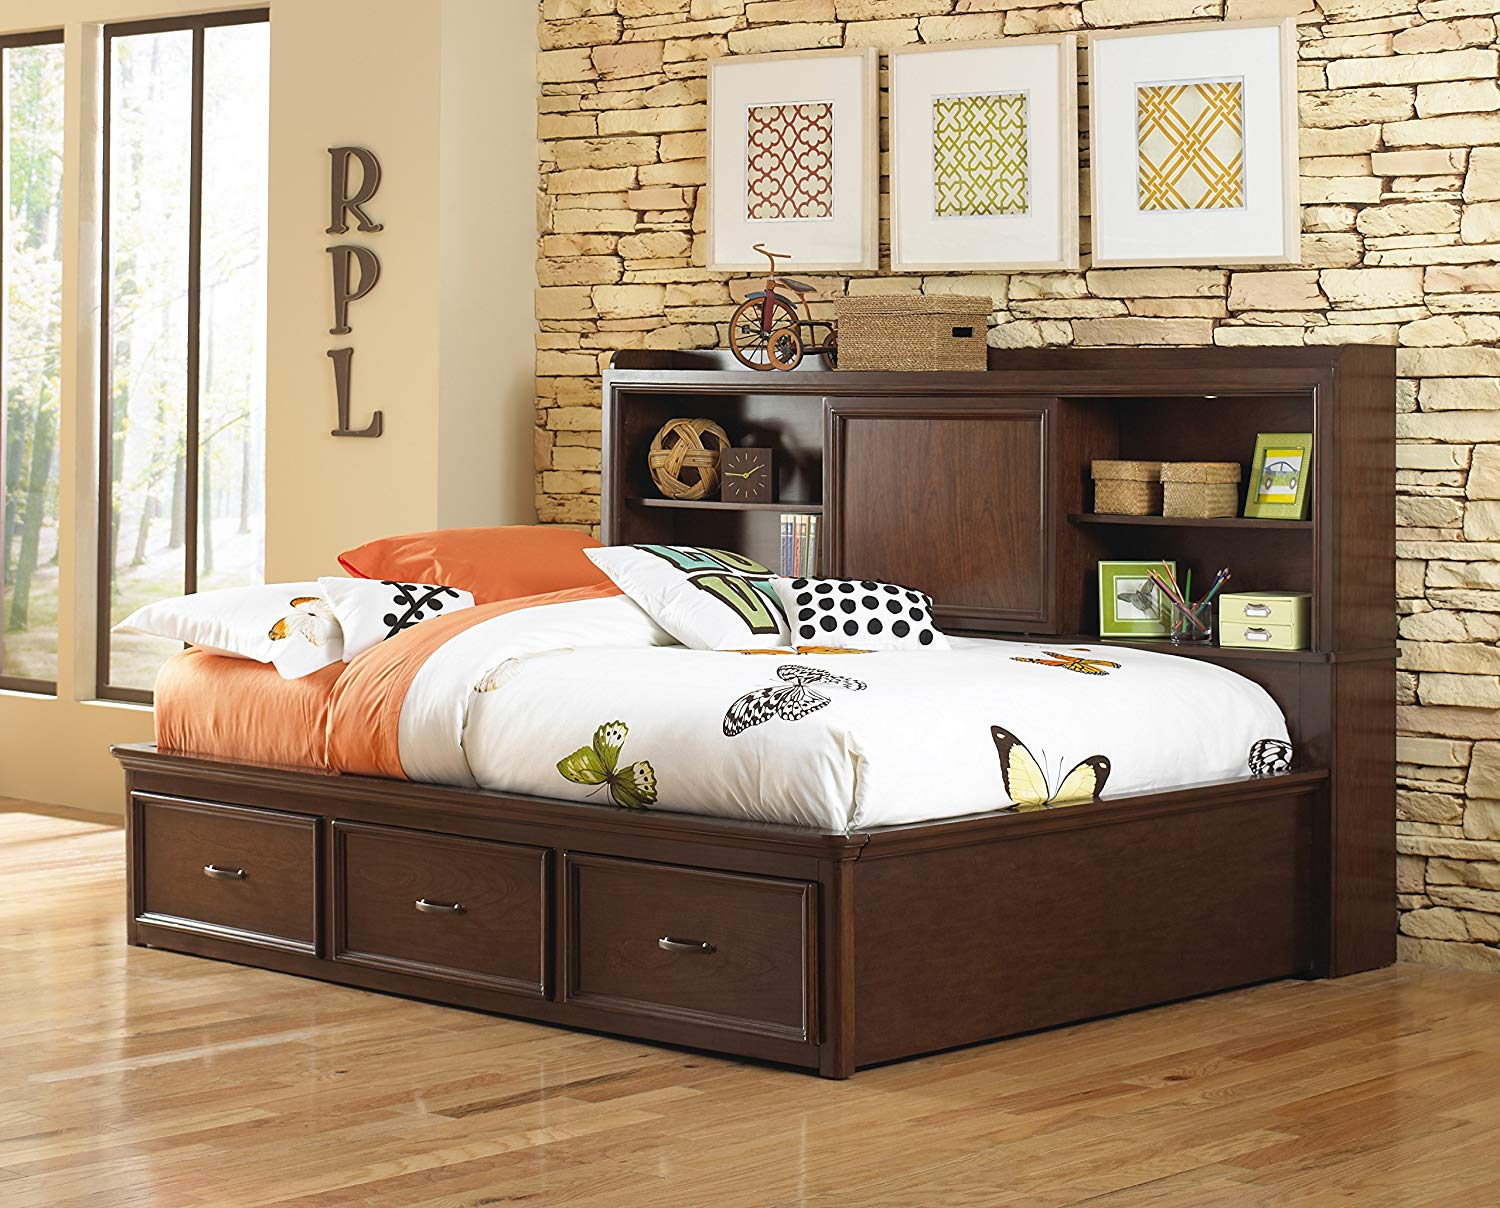 Picture of: Storage Beds Full Size